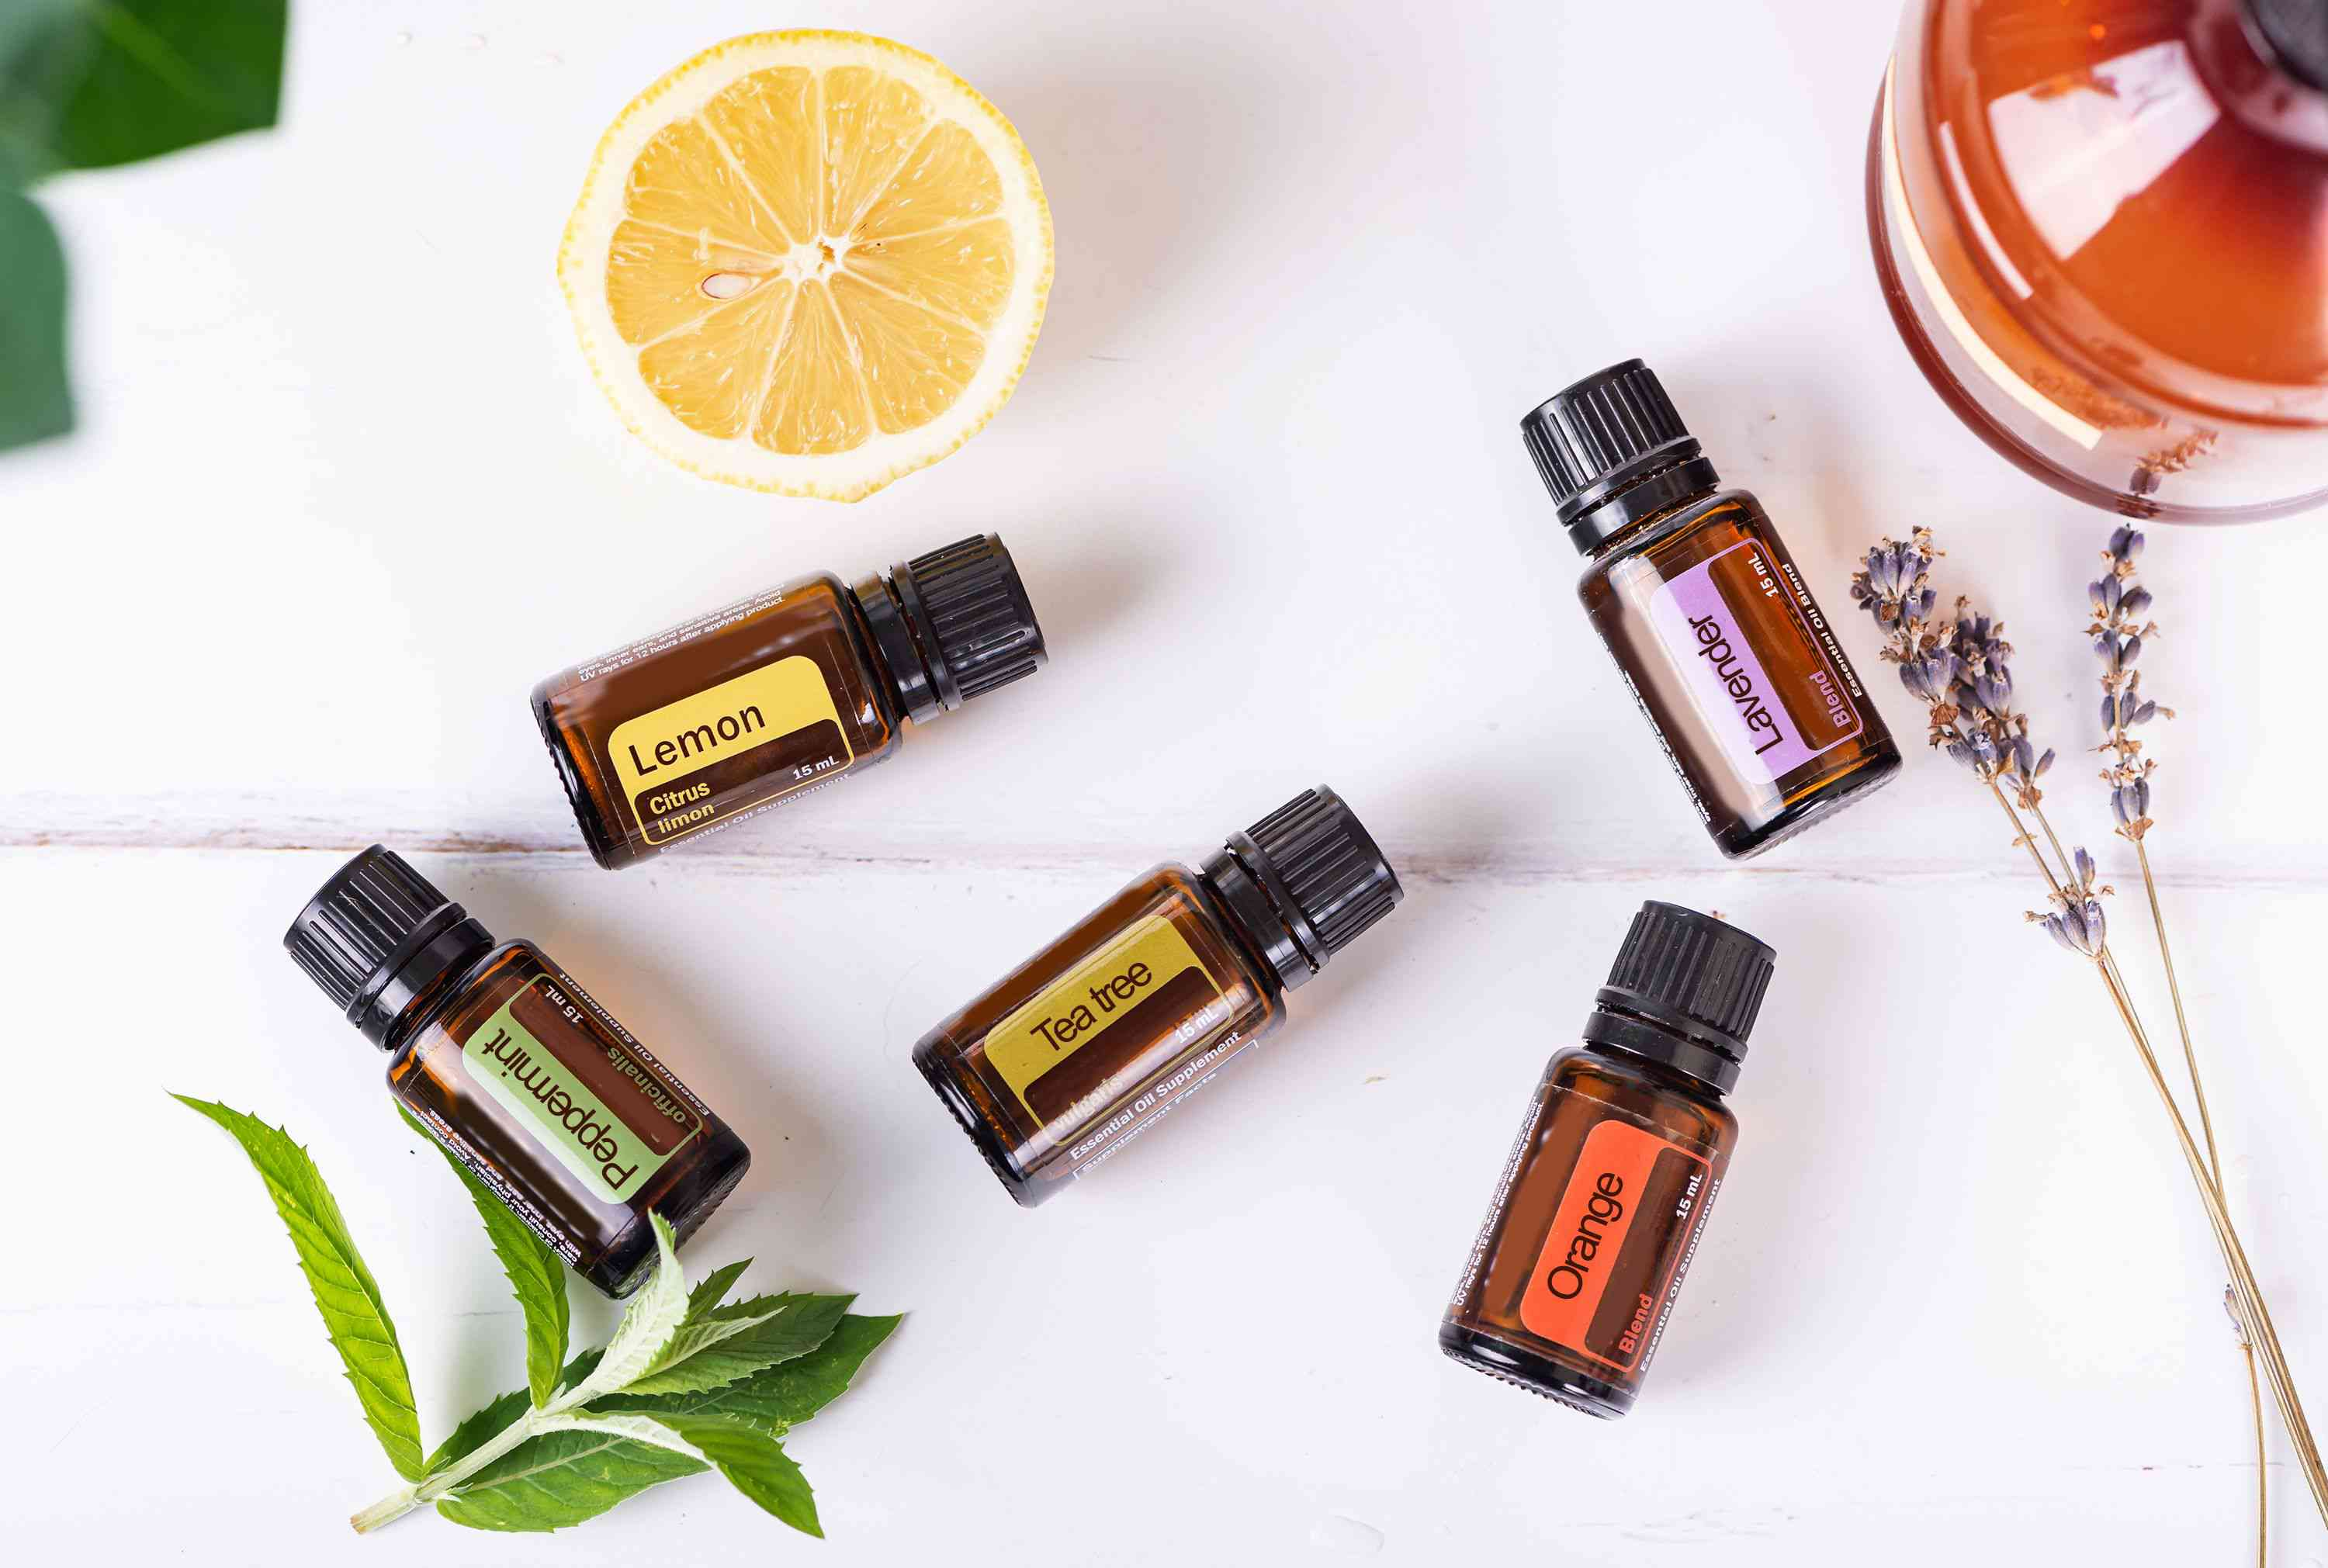 assortment of essential oils from overhead